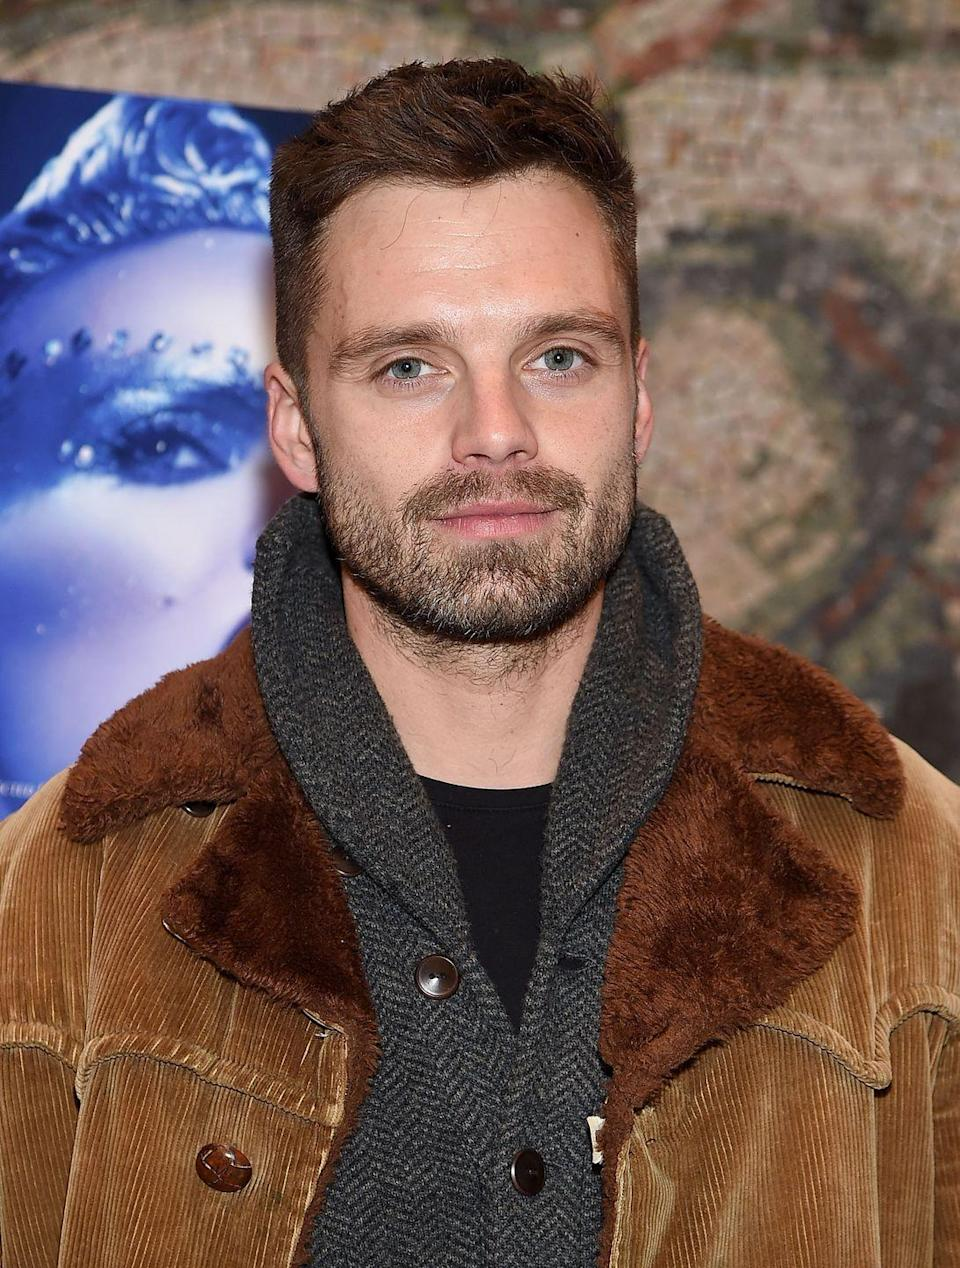 """<p><strong>The role: </strong><a href=""""https://www.cnbc.com/2018/06/06/avengers-bucky-barnes-sebastian-stan-was-rejected-as-captain-america.html"""" rel=""""nofollow noopener"""" target=""""_blank"""" data-ylk=""""slk:Captain America"""" class=""""link rapid-noclick-resp"""">Captain America</a> in <em>Captain America</em></p><p><strong>Who *actually* played it:</strong> Chris Evans</p><p><strong>The role they played instead: </strong>Bucky Barnes </p><p>Although Stan originally wanted the title role as Captain America, he said that everything ultimately """"worked out"""" in his favor, and that he felt Barnes was a """"much better role"""" for him. <br></p>"""